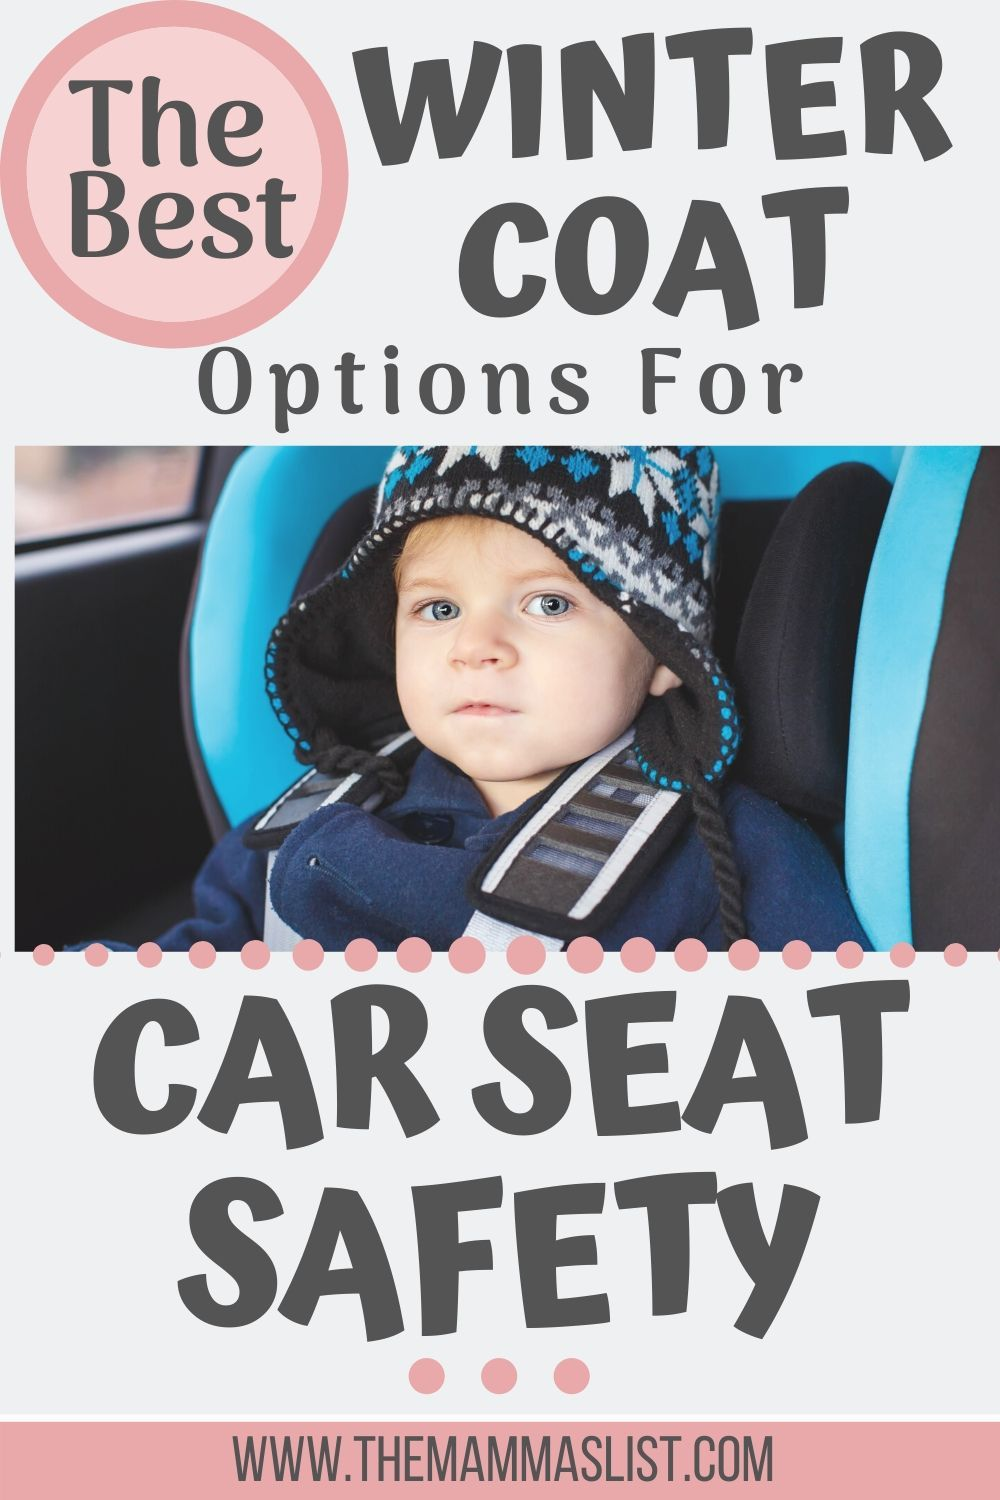 The best car seat coat options to keep your kids safe this